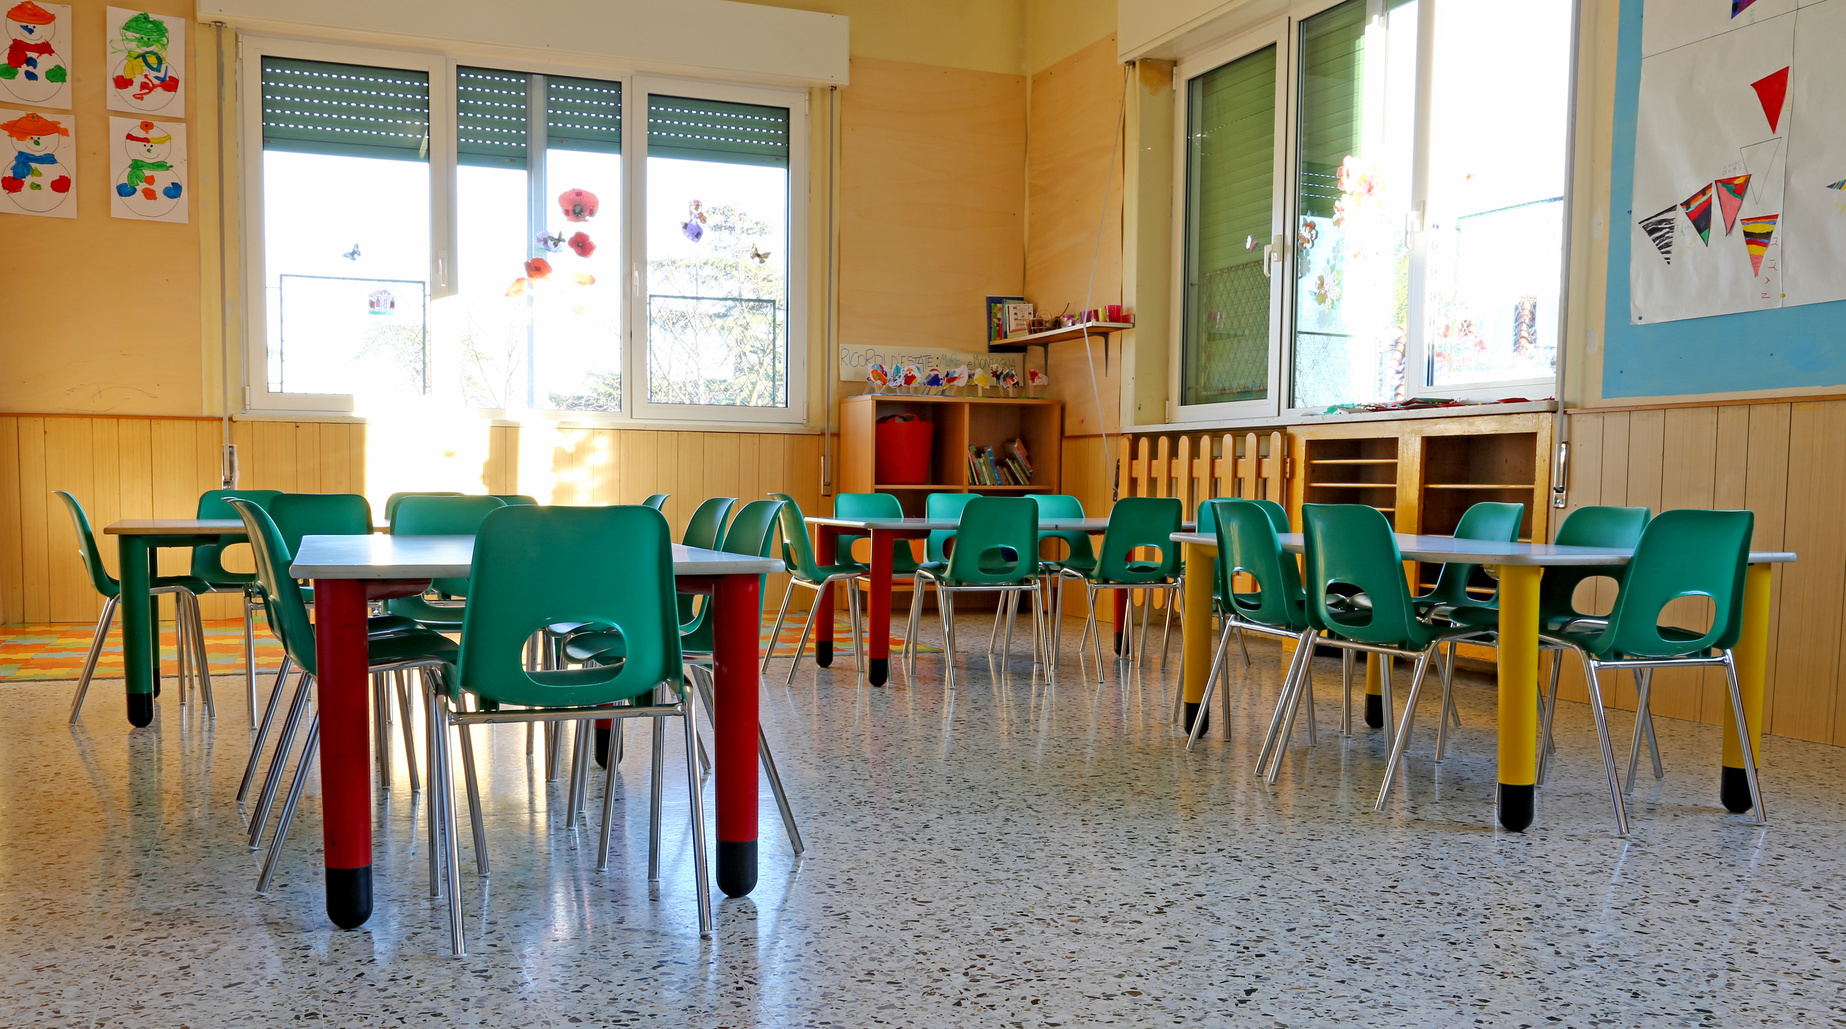 Warnings over education cuts